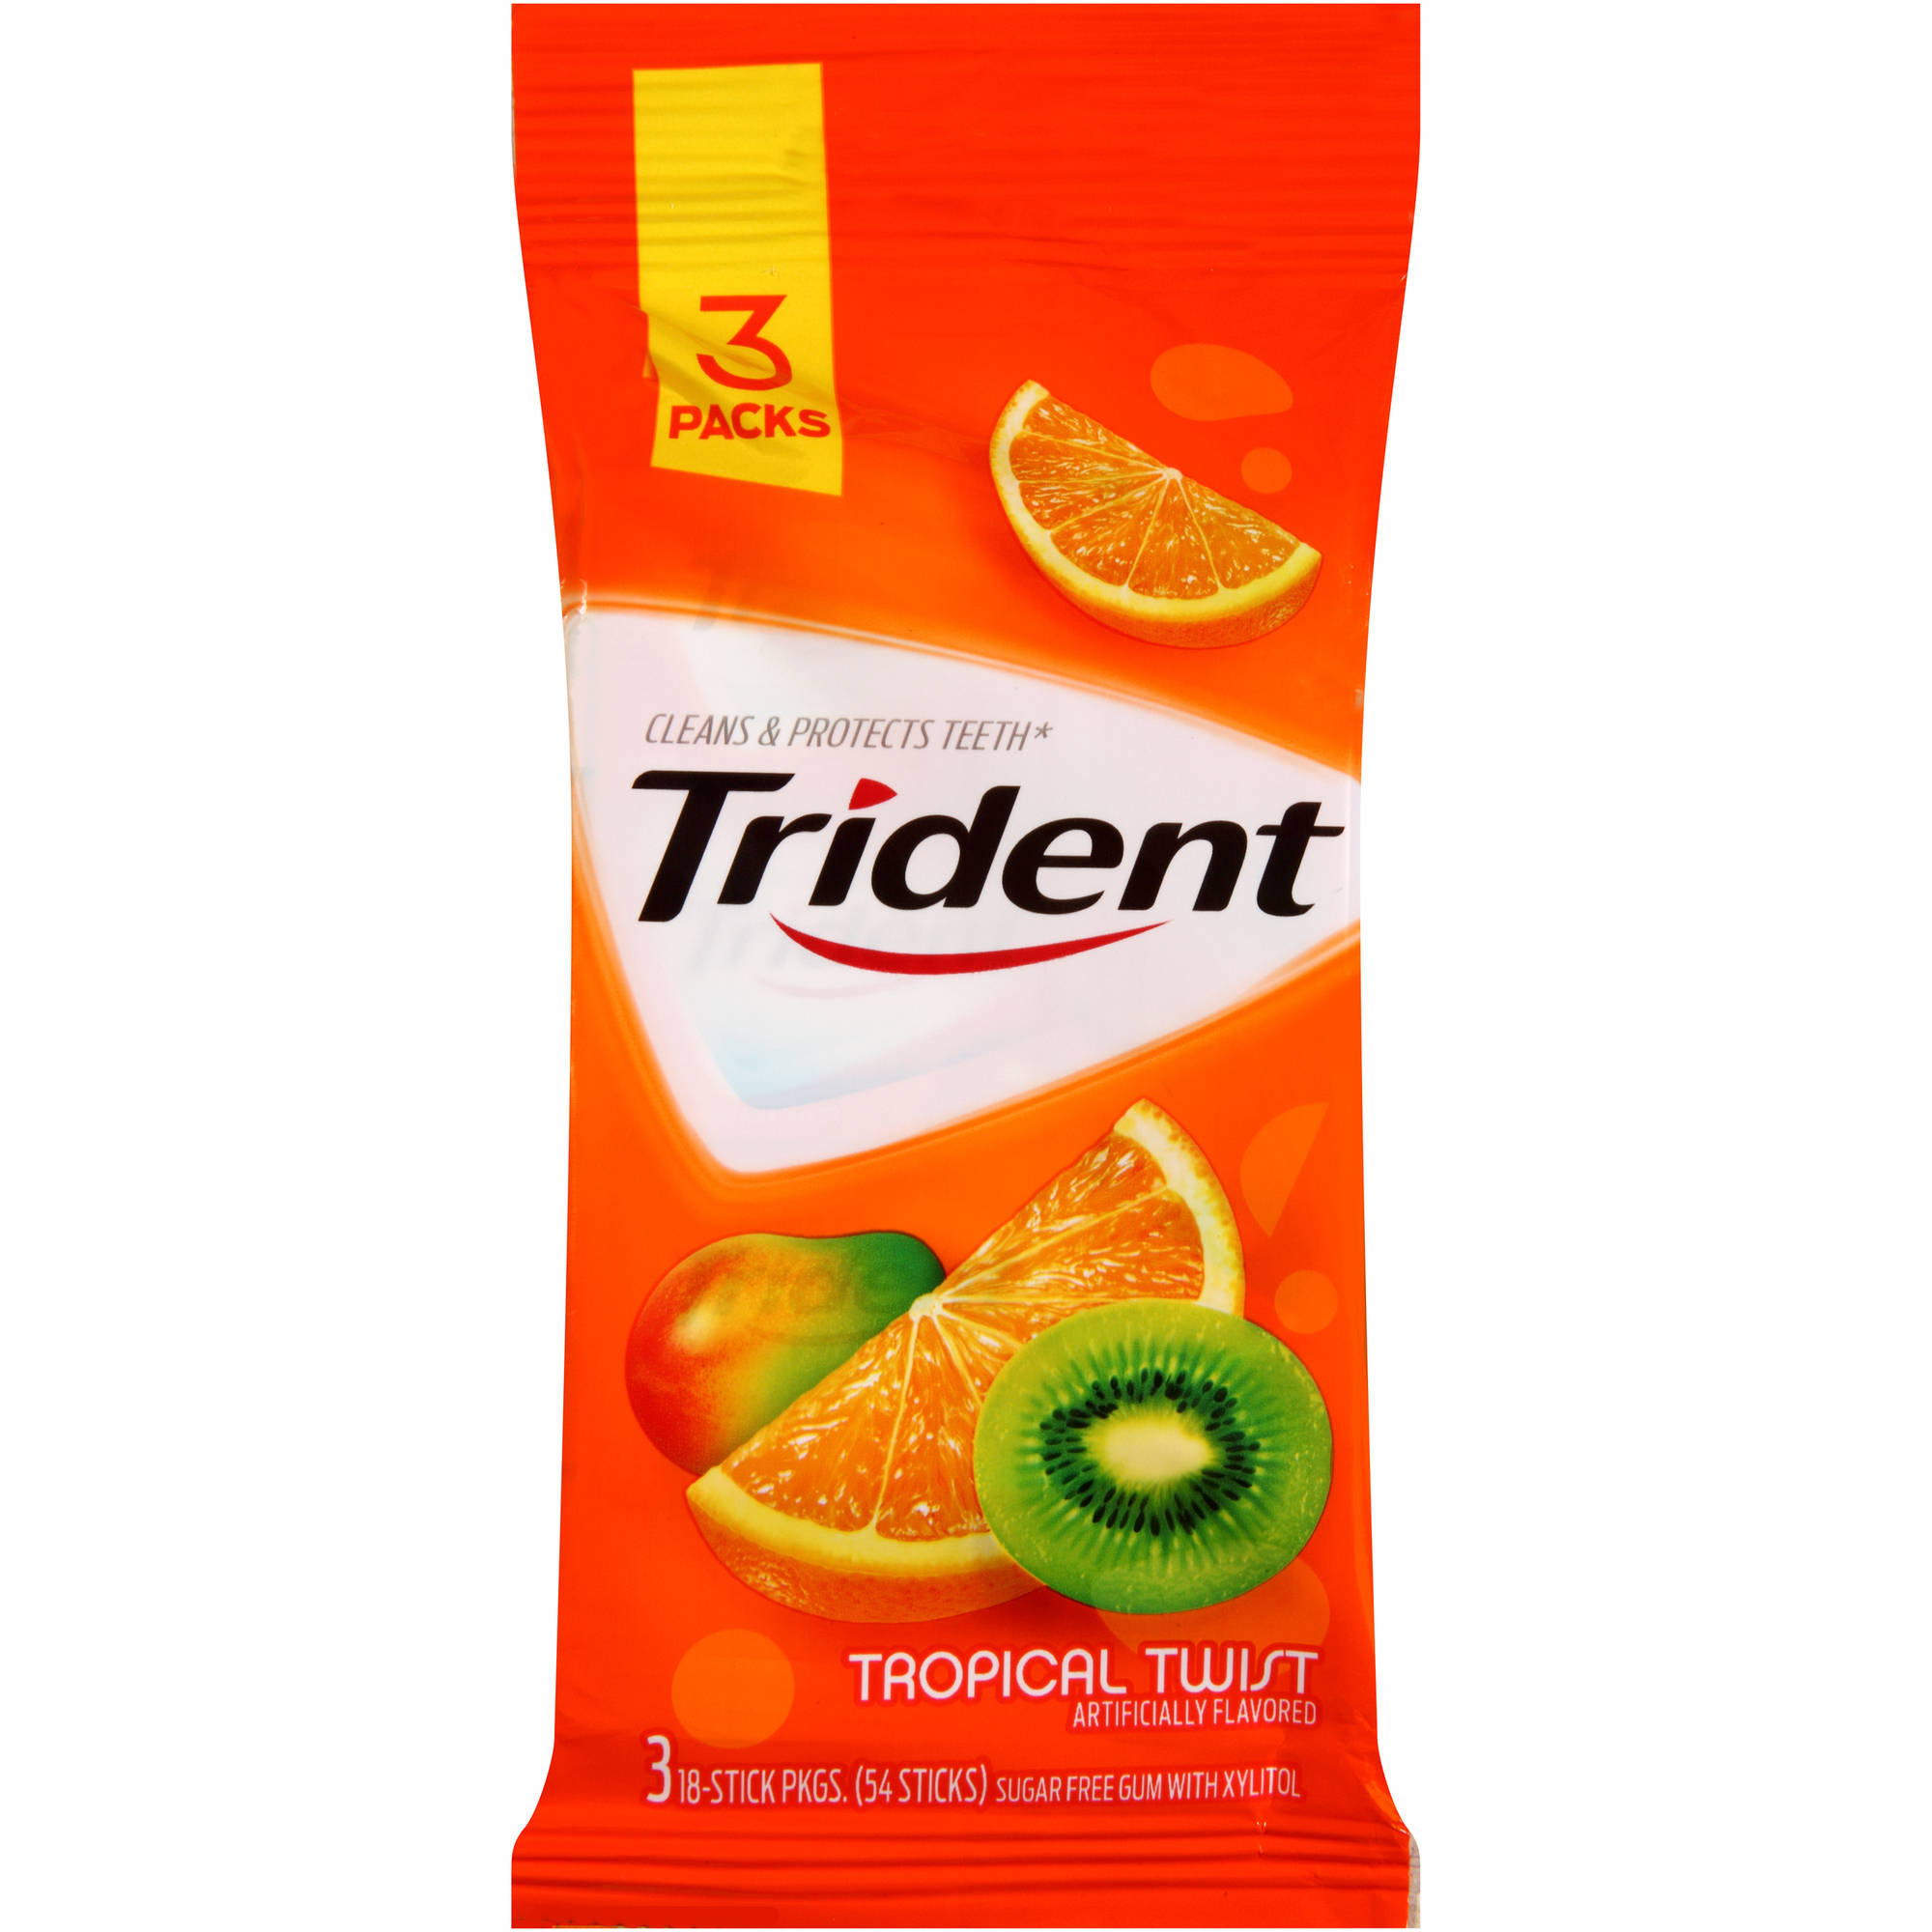 Trident Tropical Twist Sugar Free Gum with Xylitol, 18 pc, 3 count